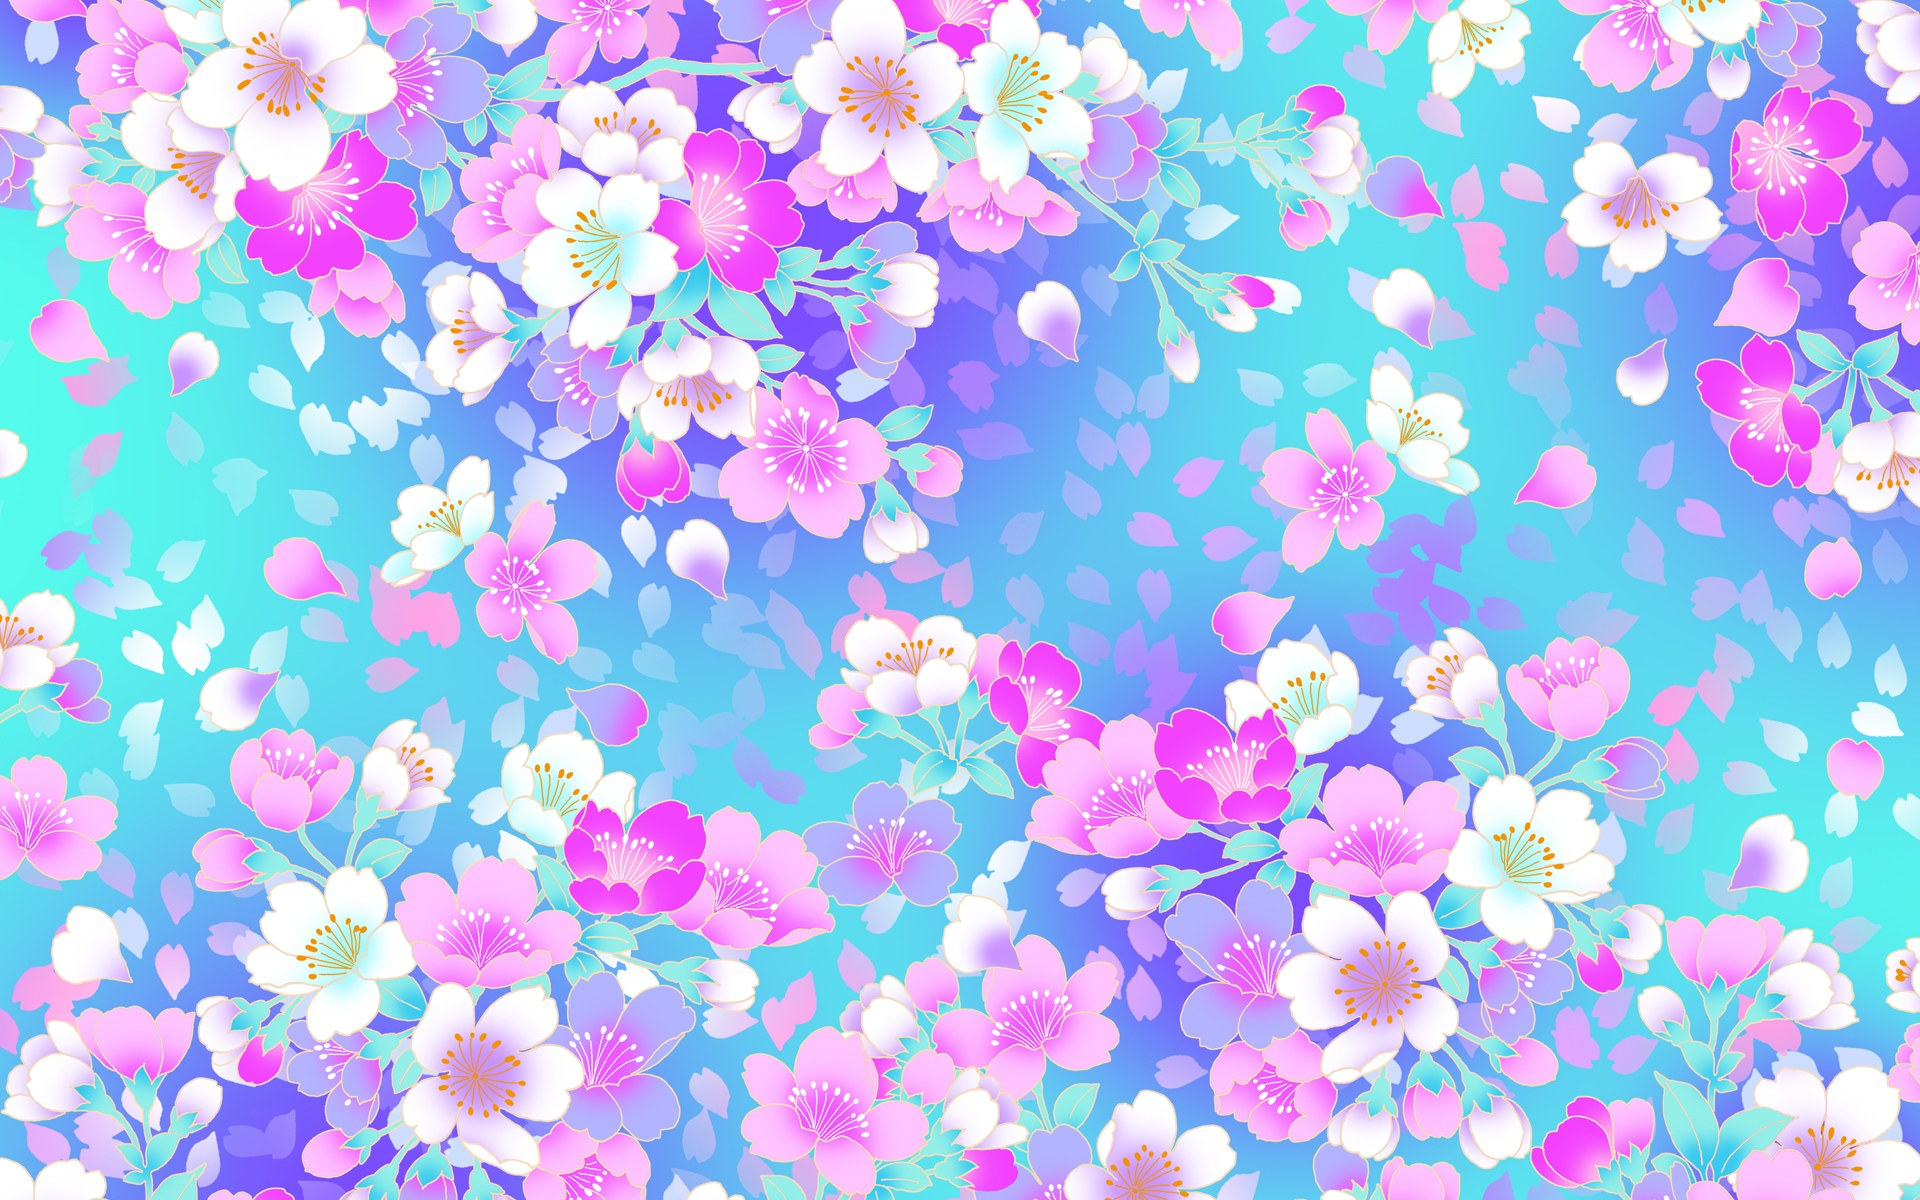 Magical Girly Cool Wallpaper